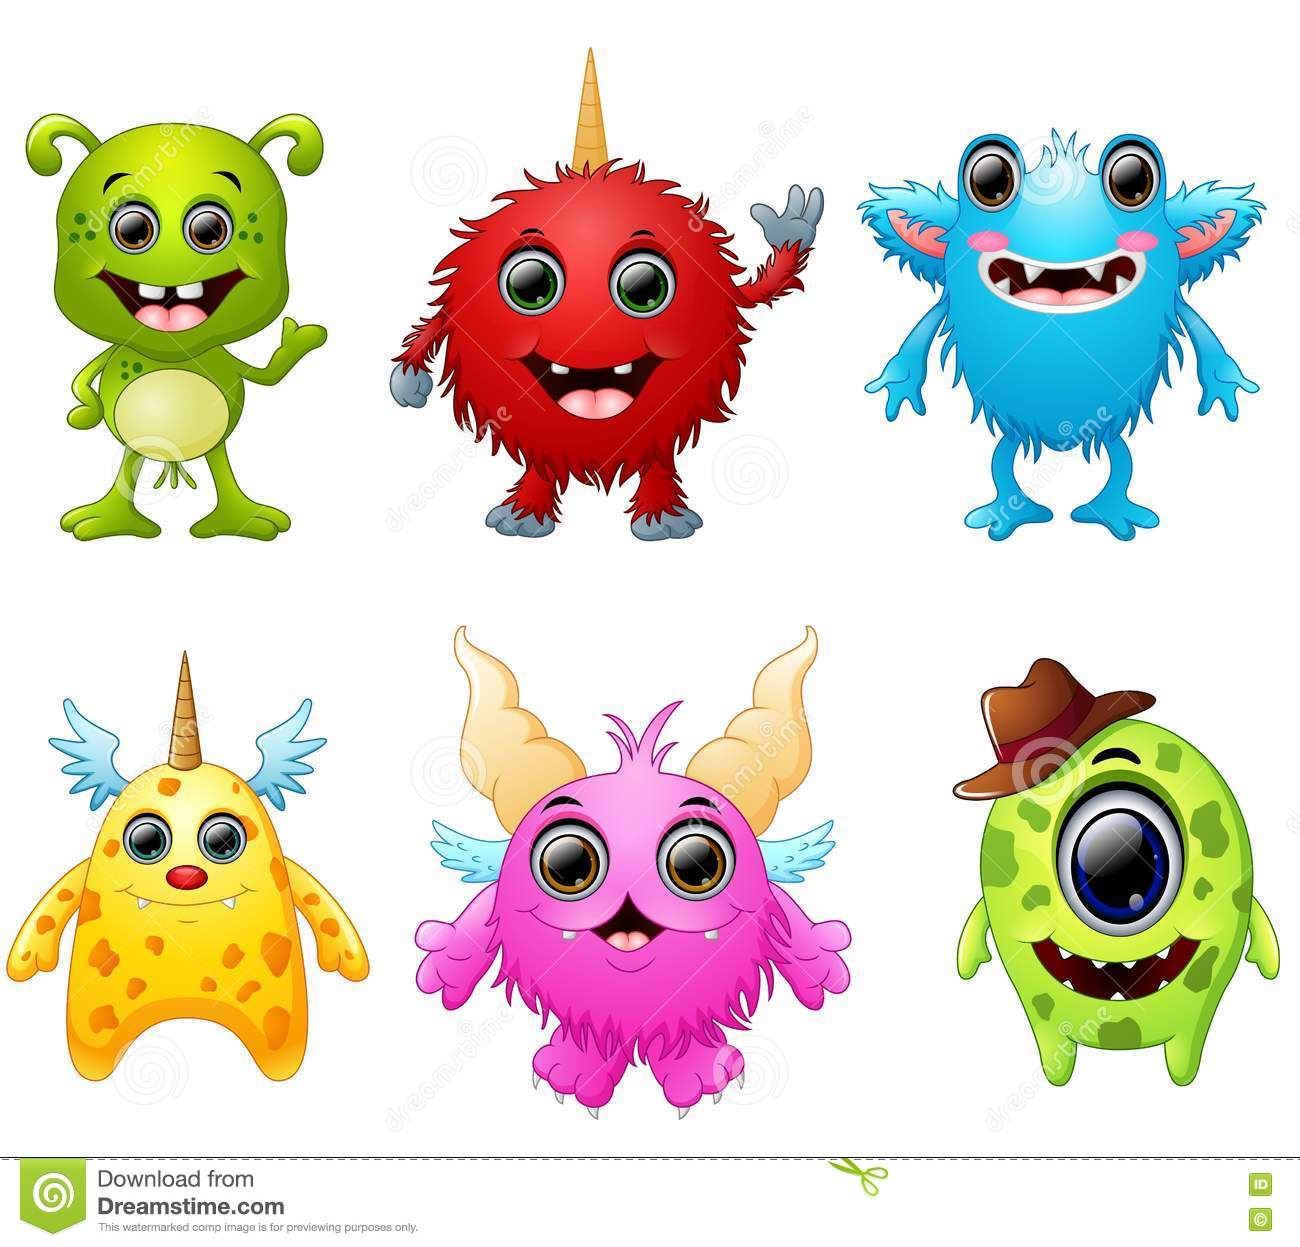 collection of monster ficticious cartoon characters vector eyeball clipart images eyeball clipart black and white